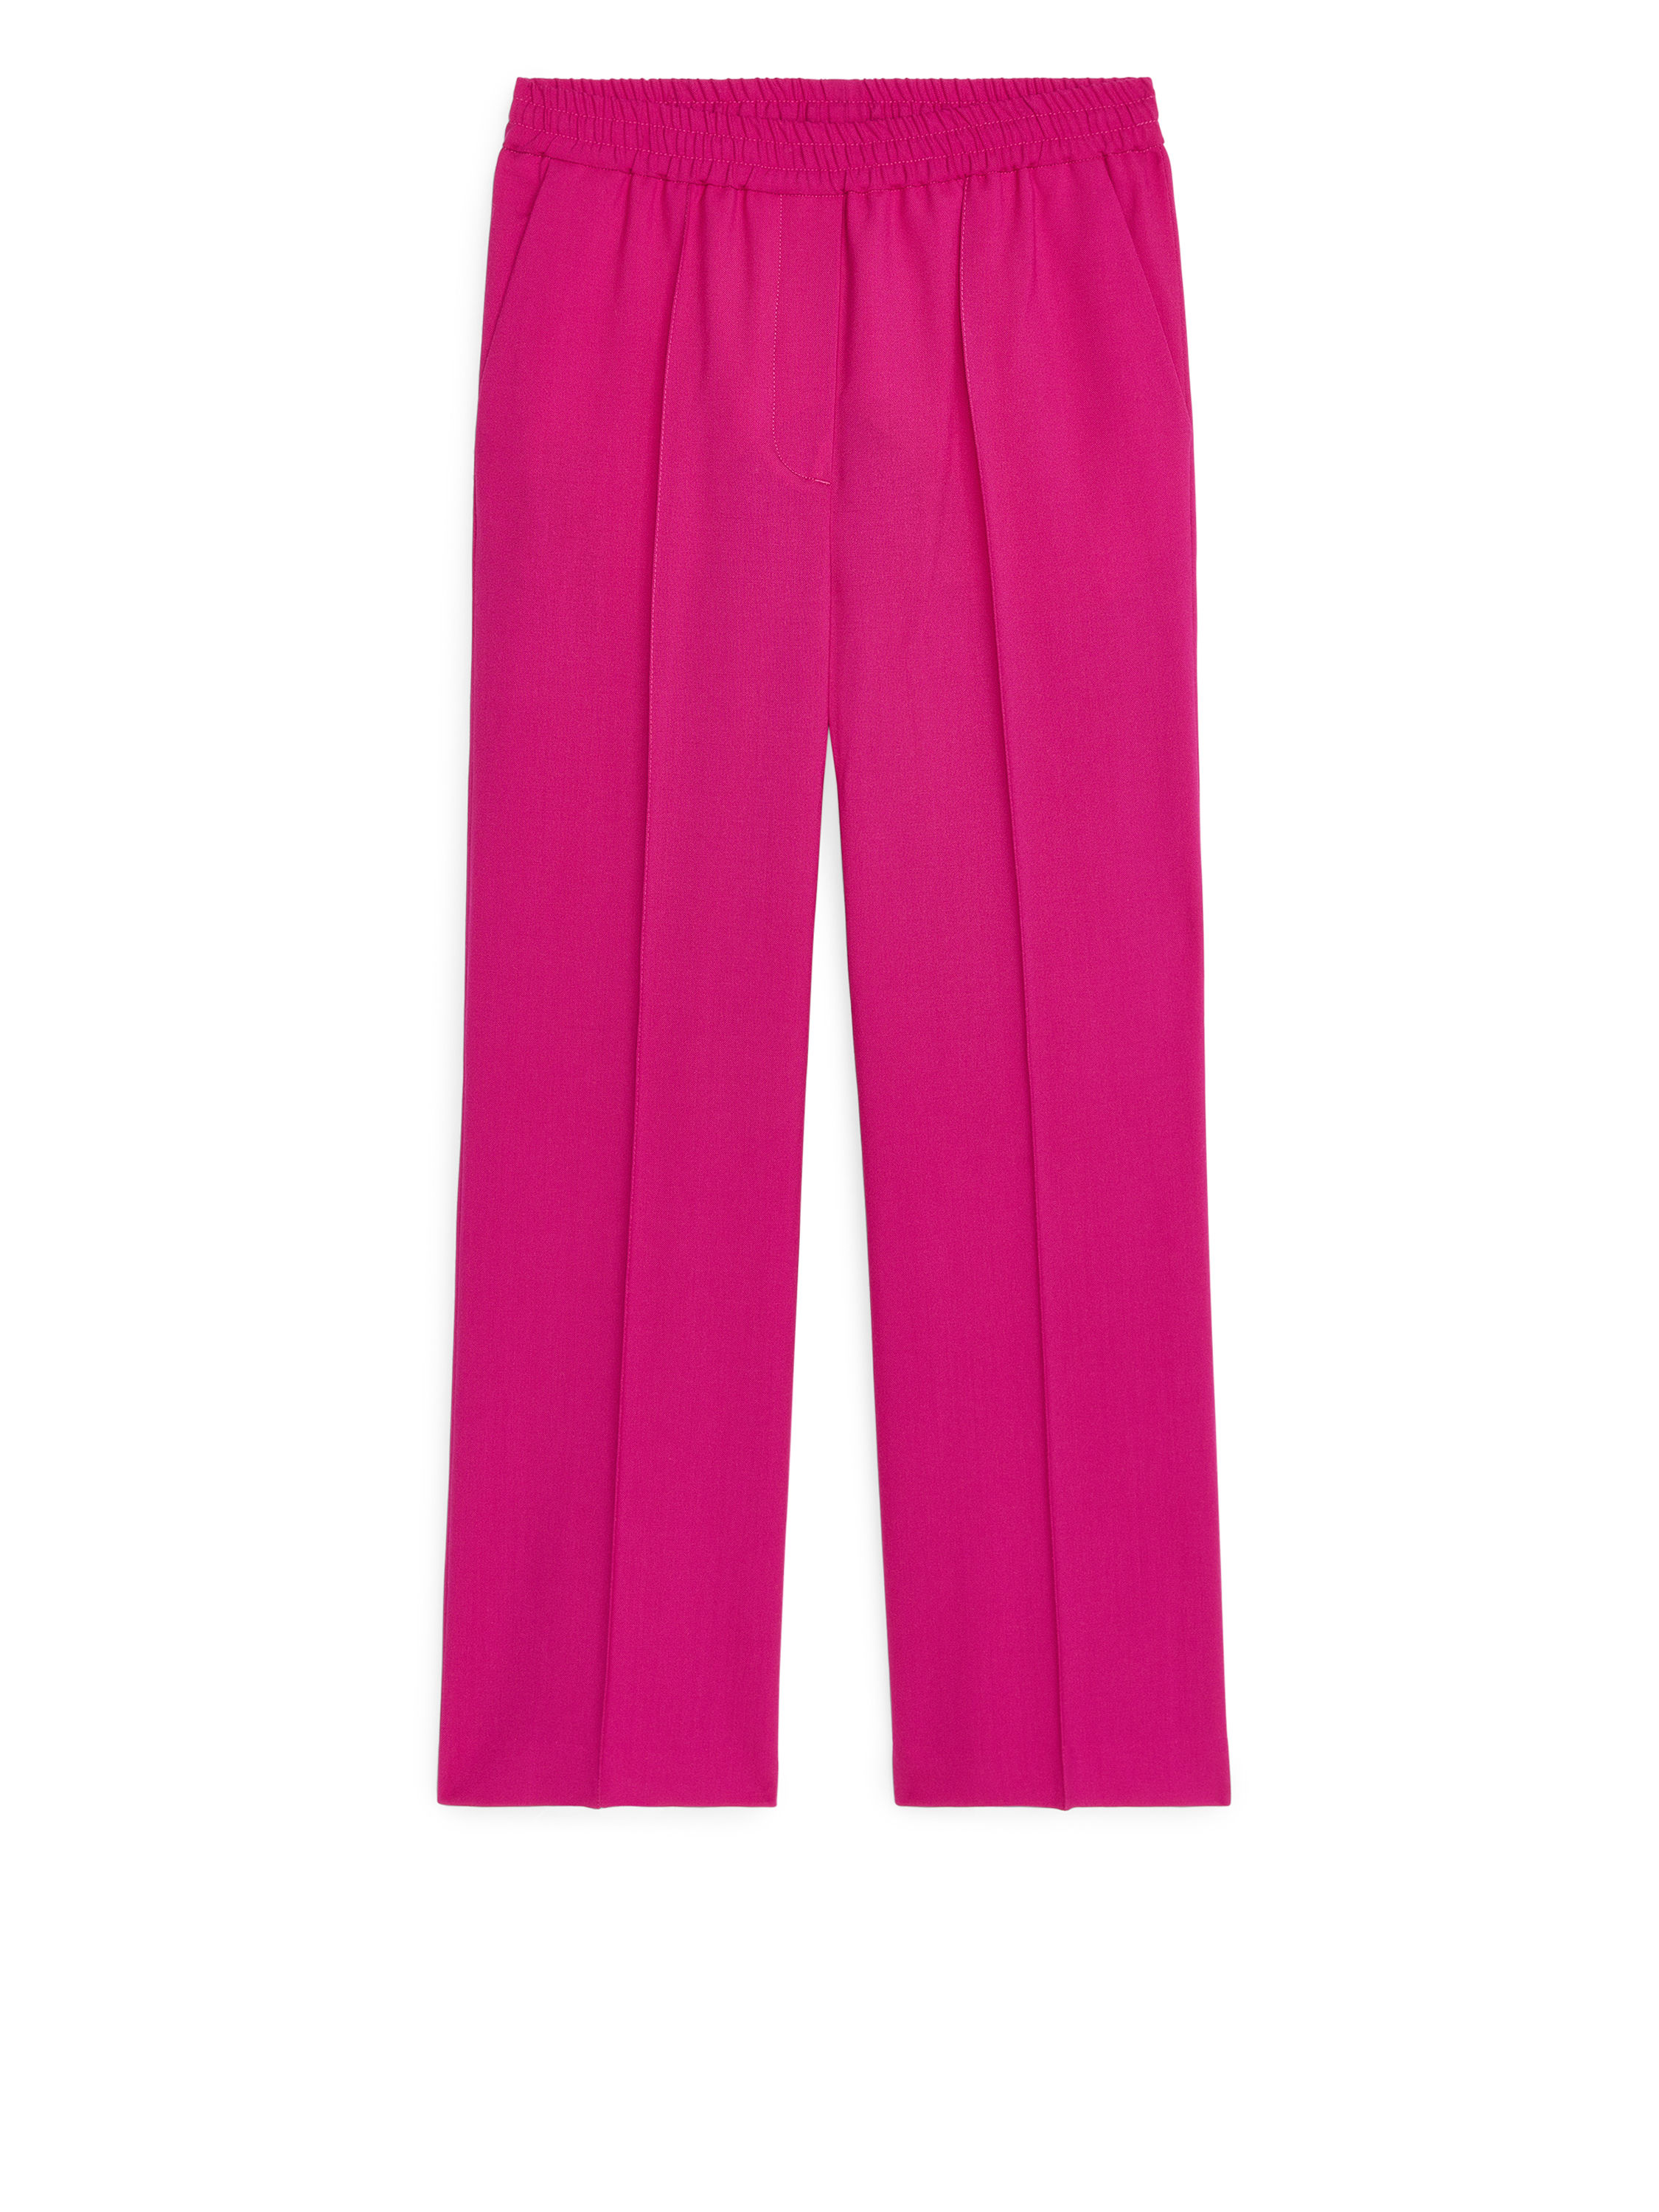 Fabric Swatch image of Arket elastic waist wool trousers in pink